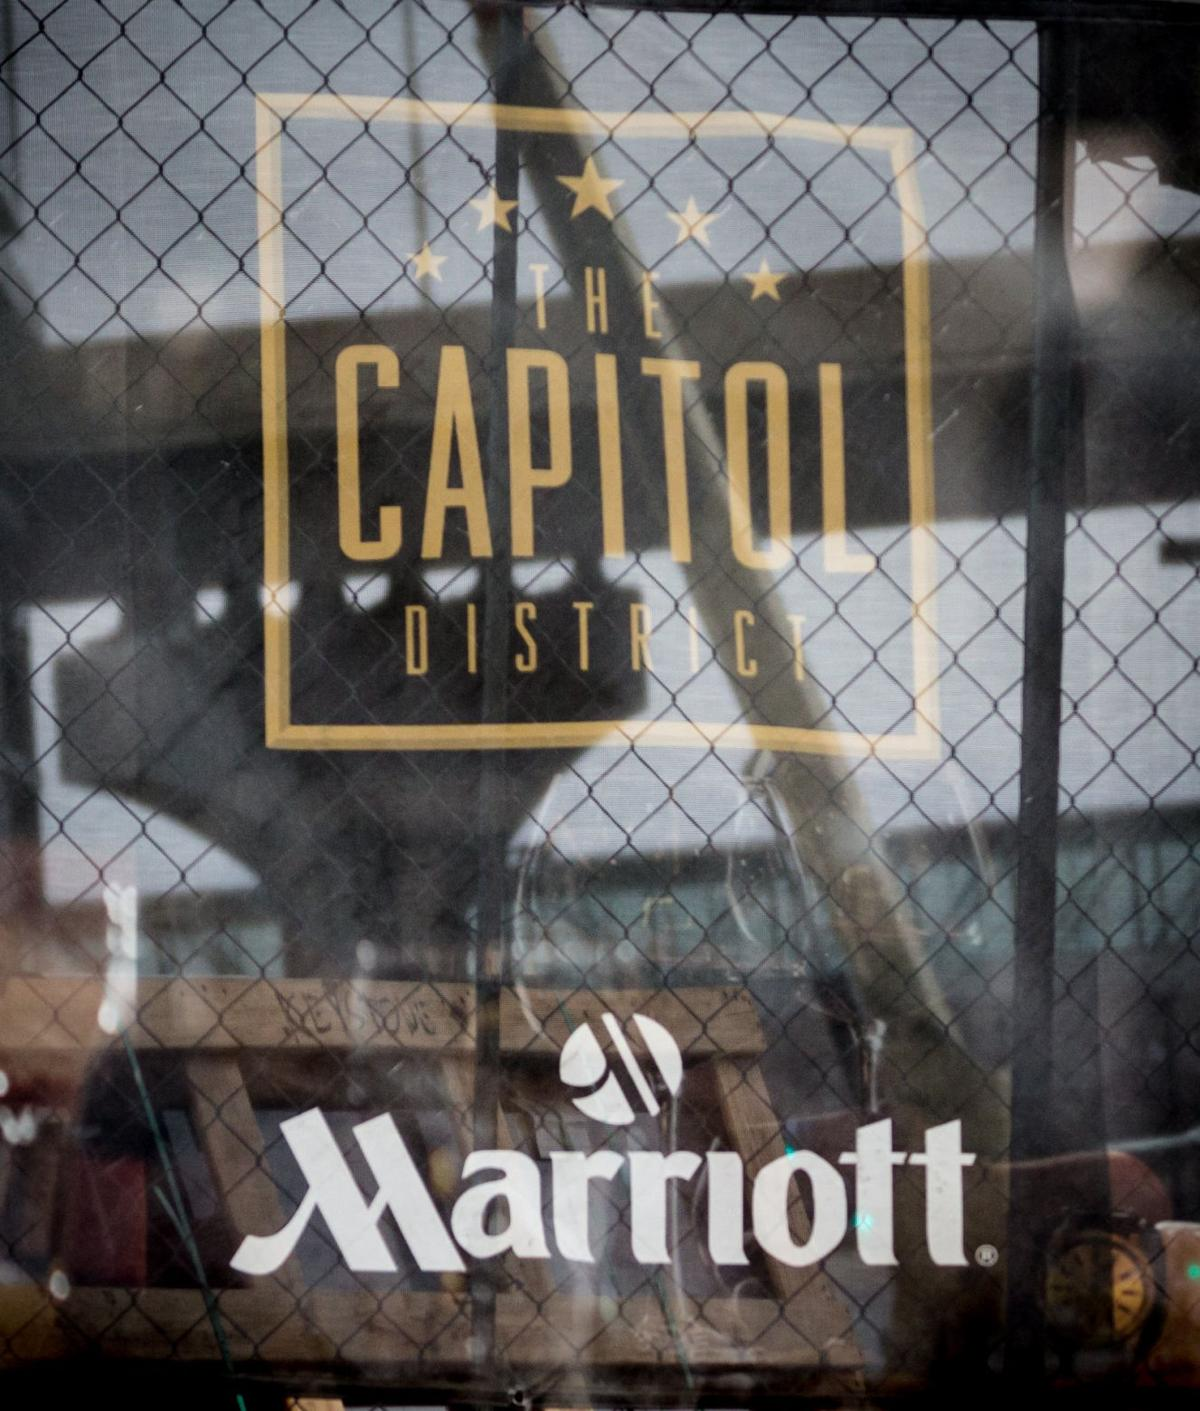 college world series fans will get first taste of capitol district